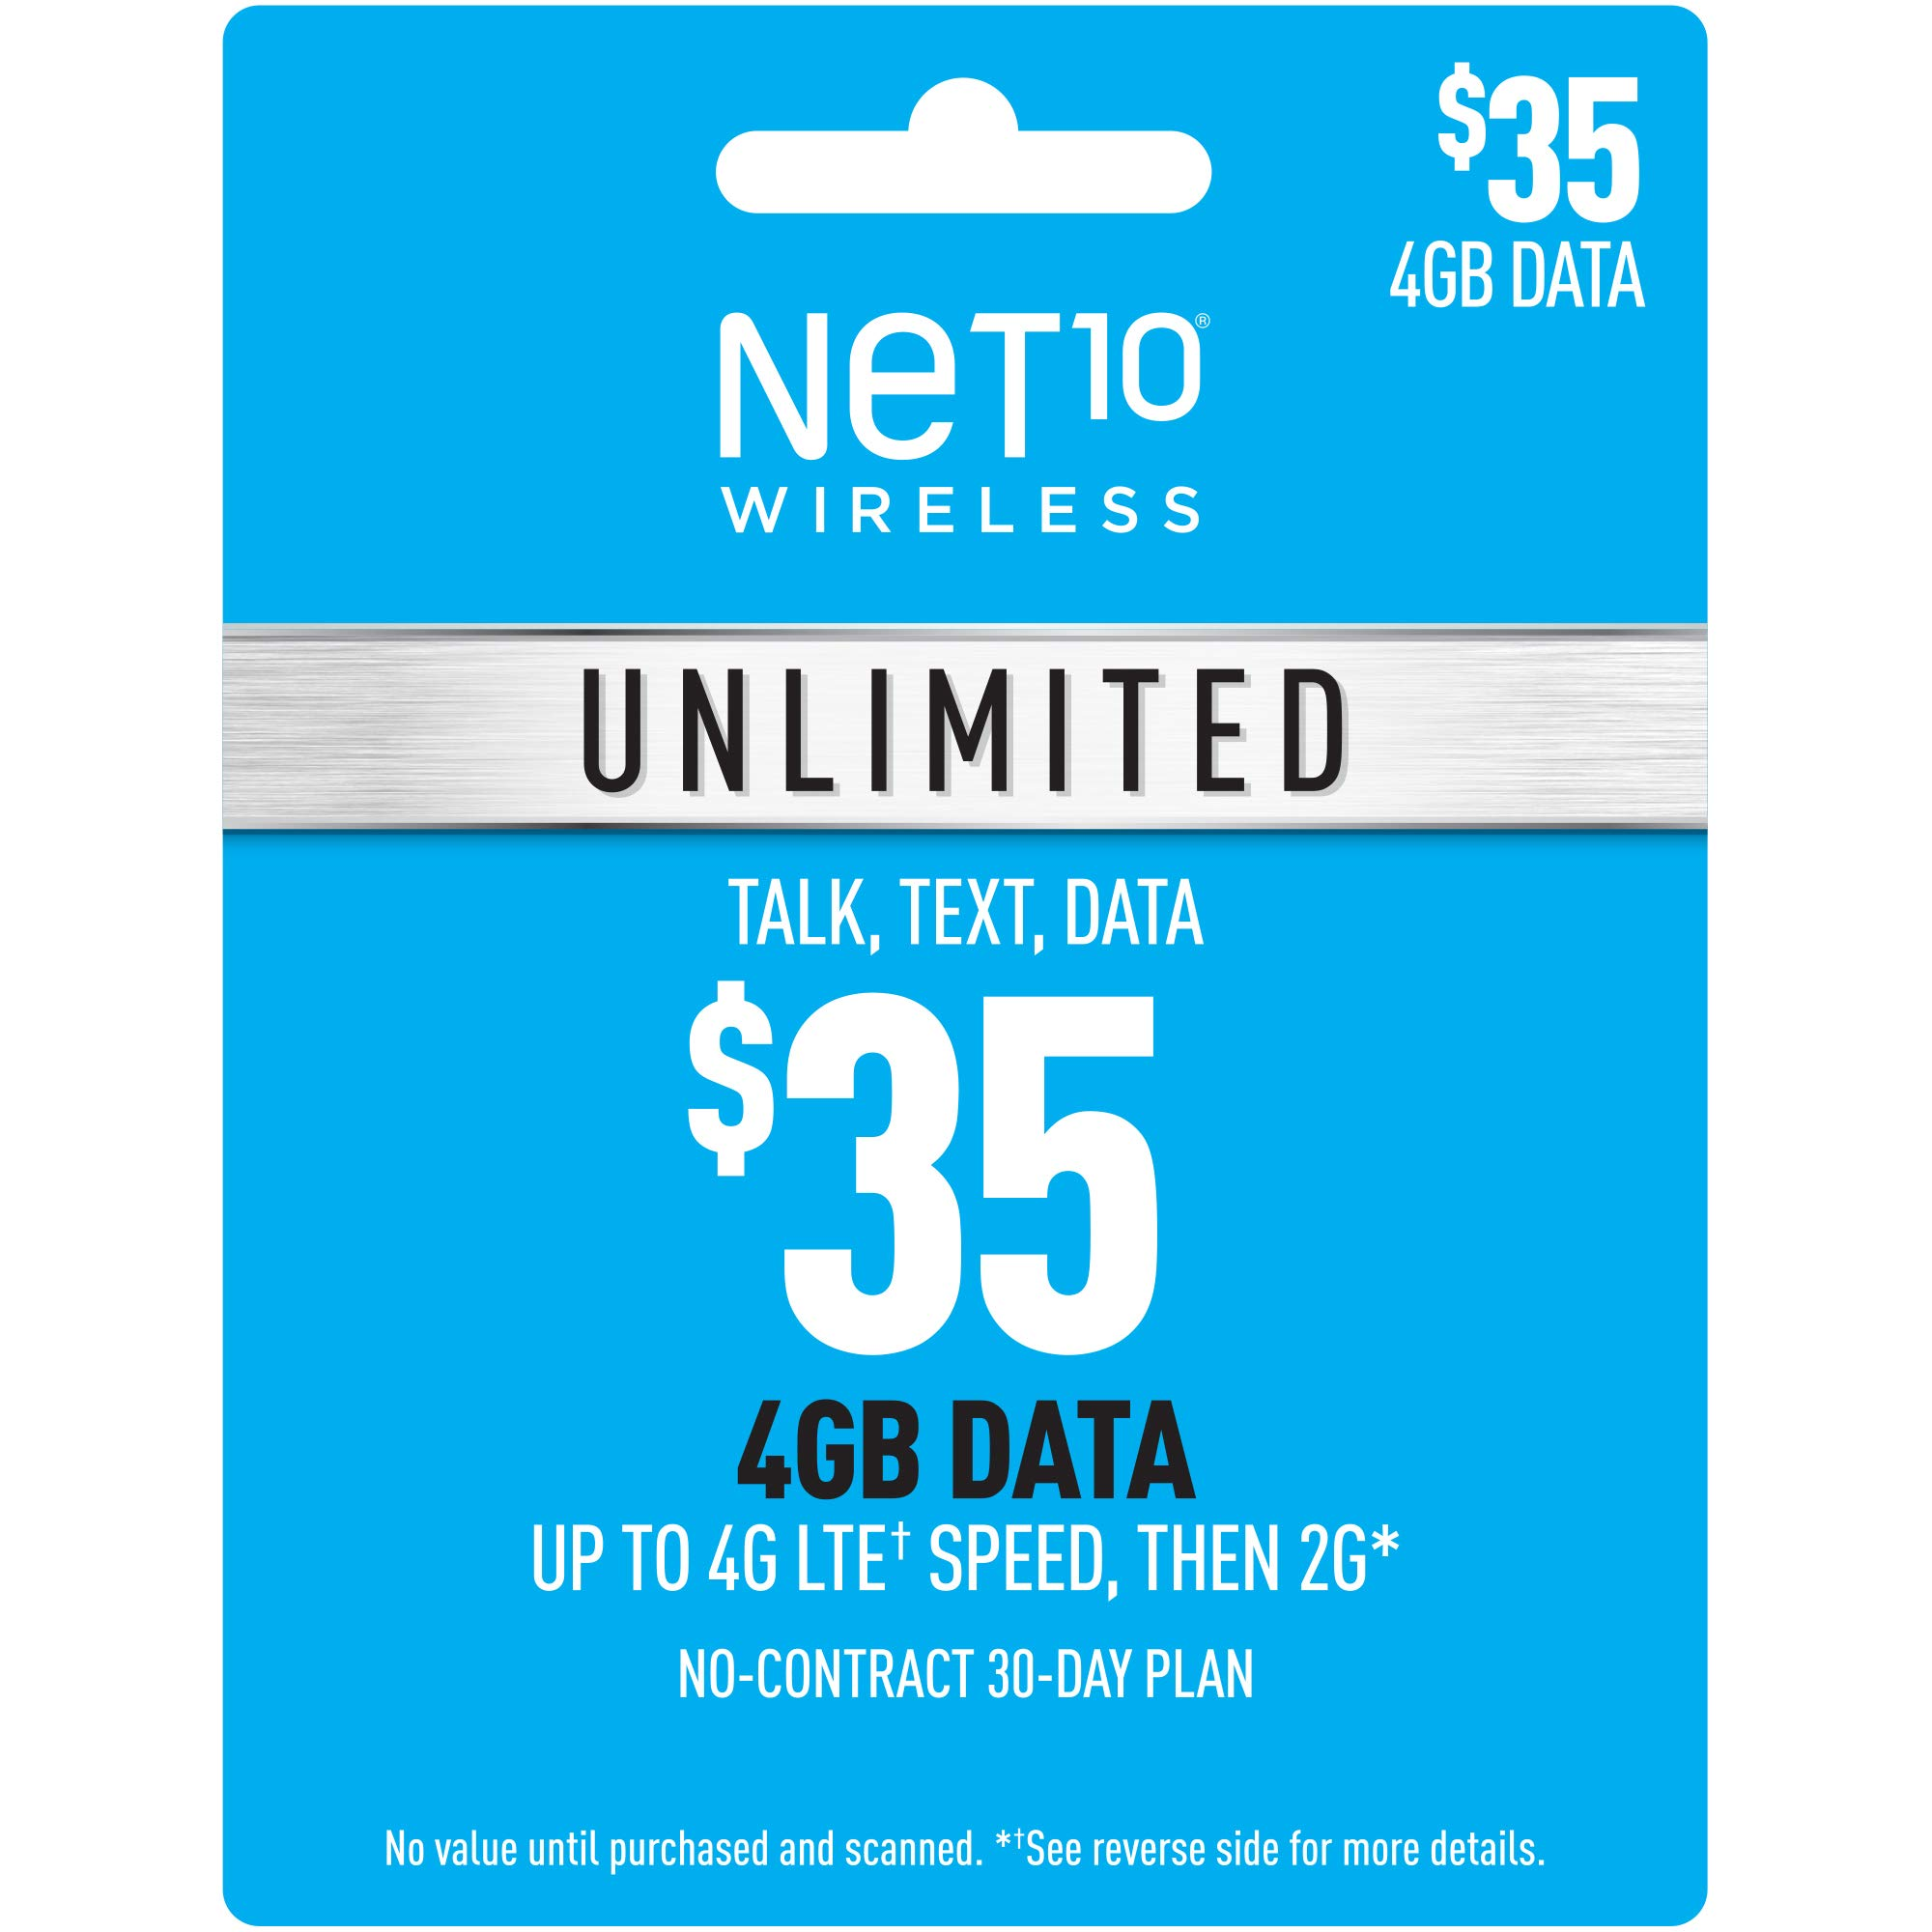 Net10 Wireless Unlimited 4GB Plan Refill Card (Mail Delivery) by Net10